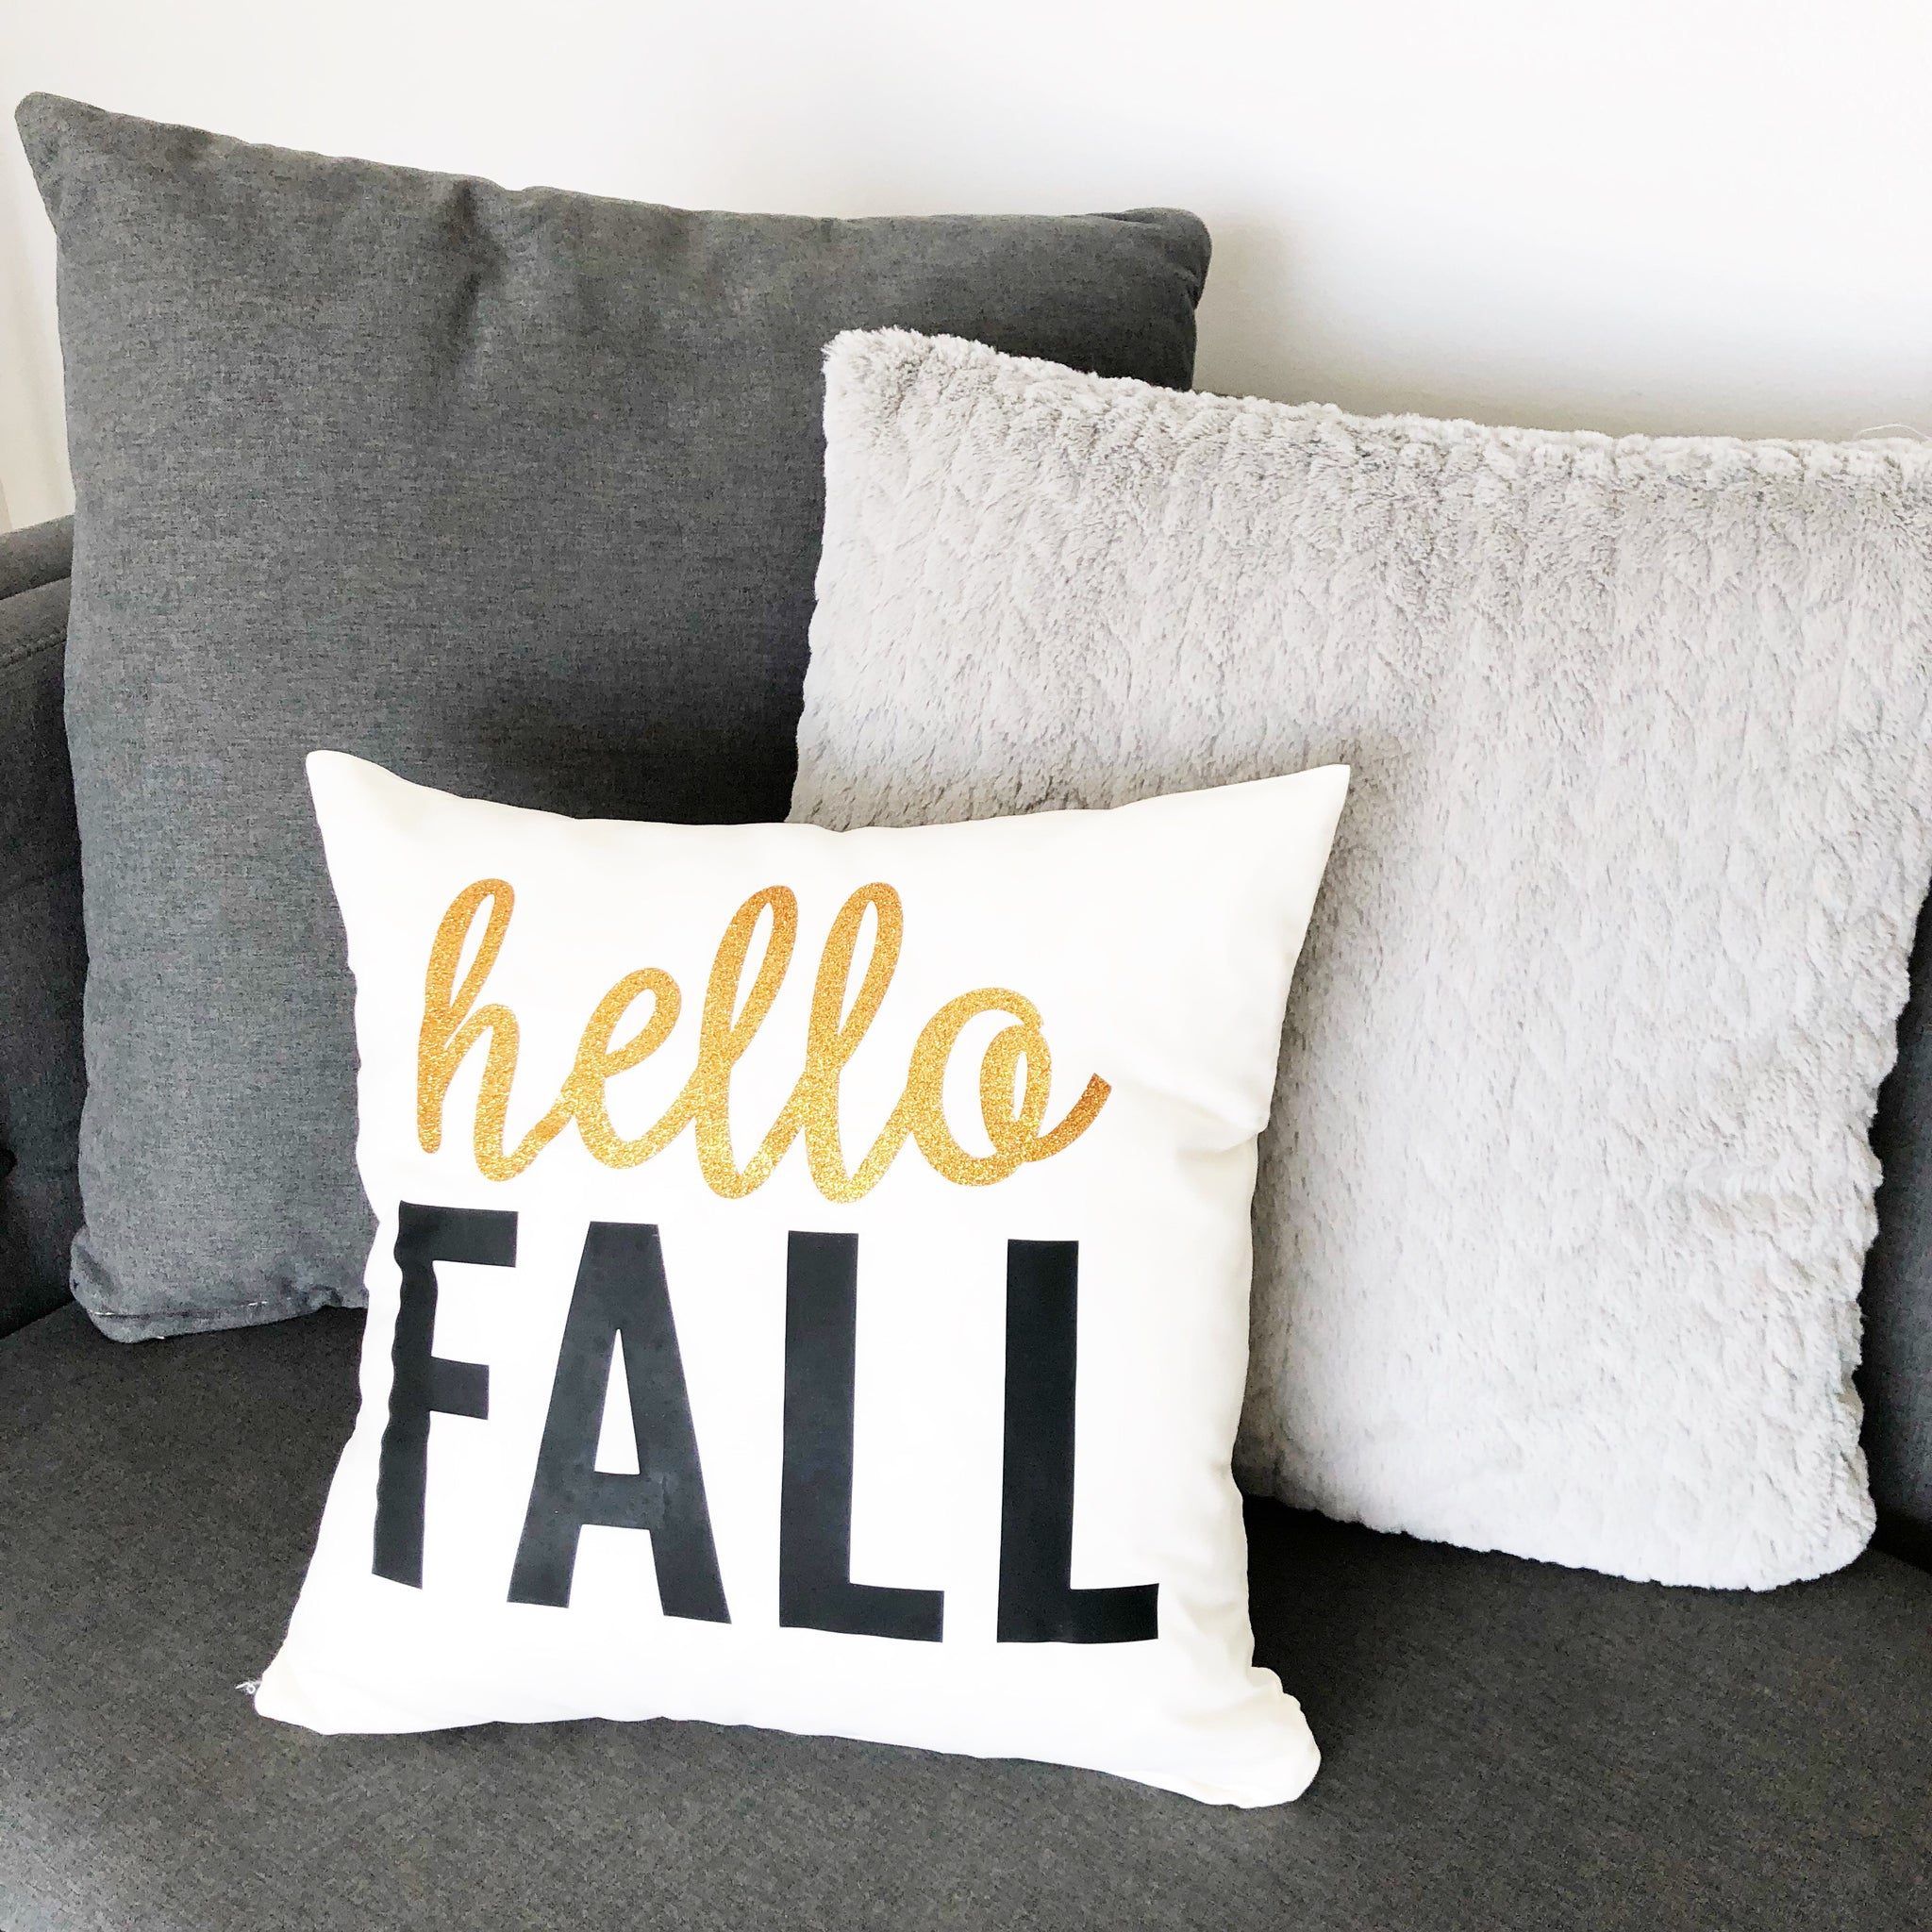 Diy Fall Decor Made Easy With Color Chimp Heat Transfer Vinyl Craftey